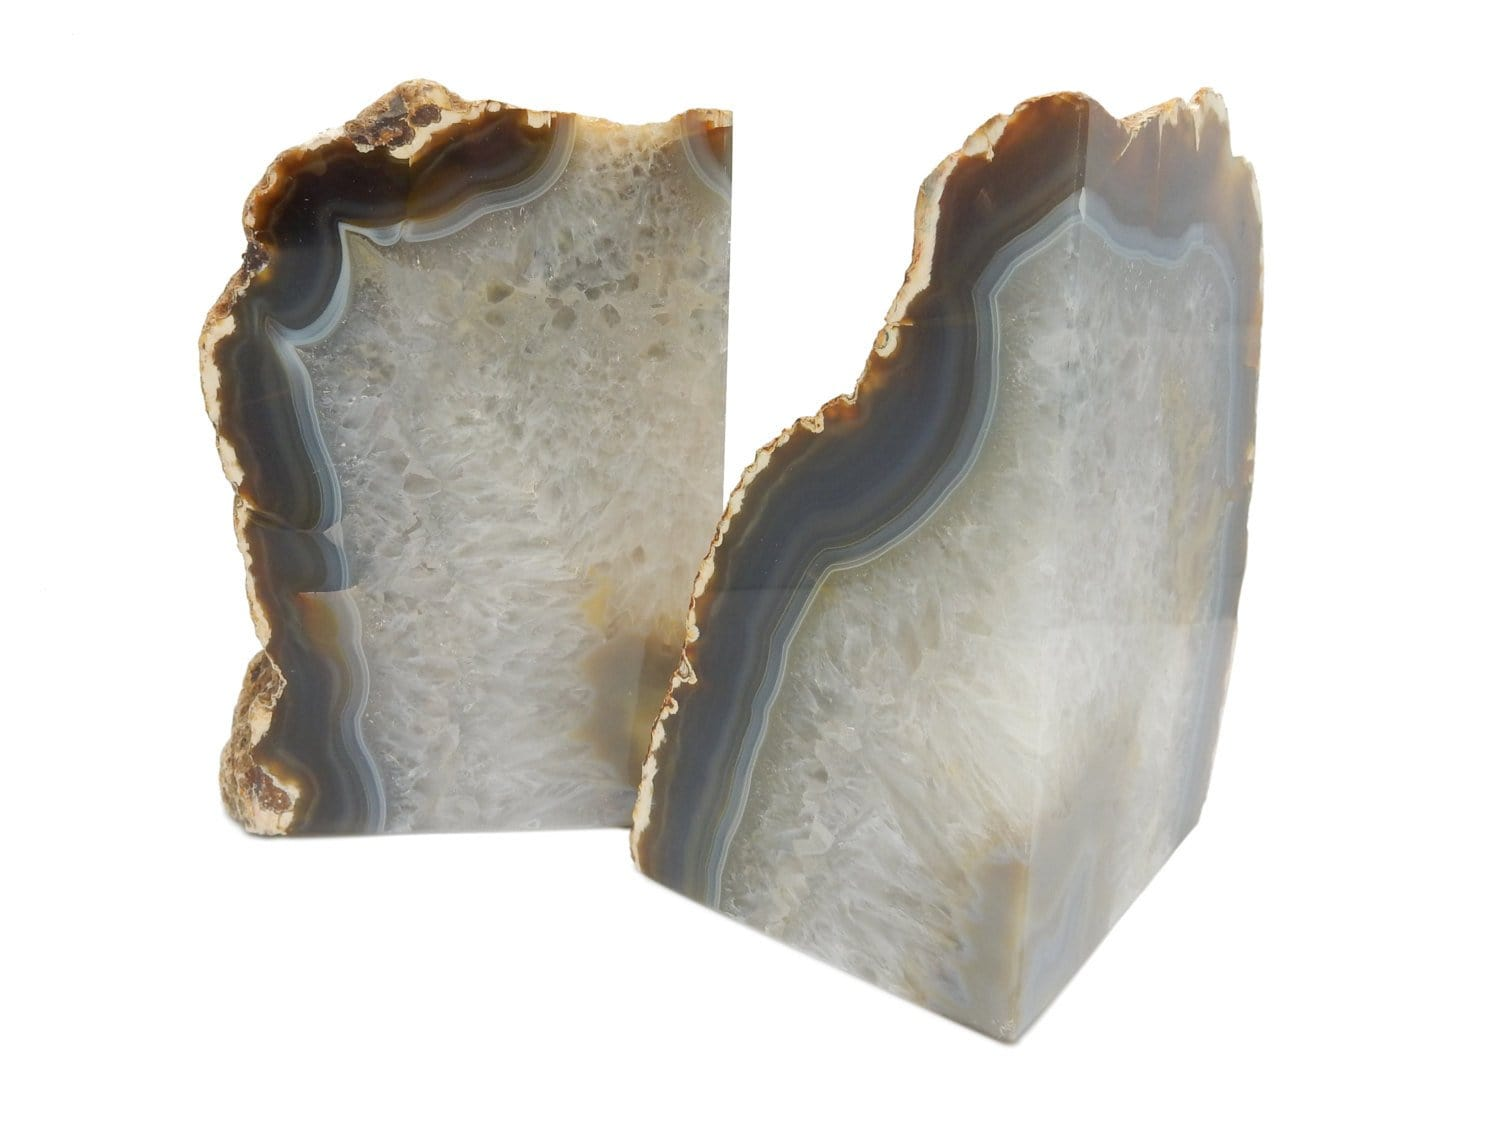 Bookends - Geode Bookends Natural Large Agate Geode Bookends -  Over 9 Lb Bookends - Perfect For Book Collections And Display